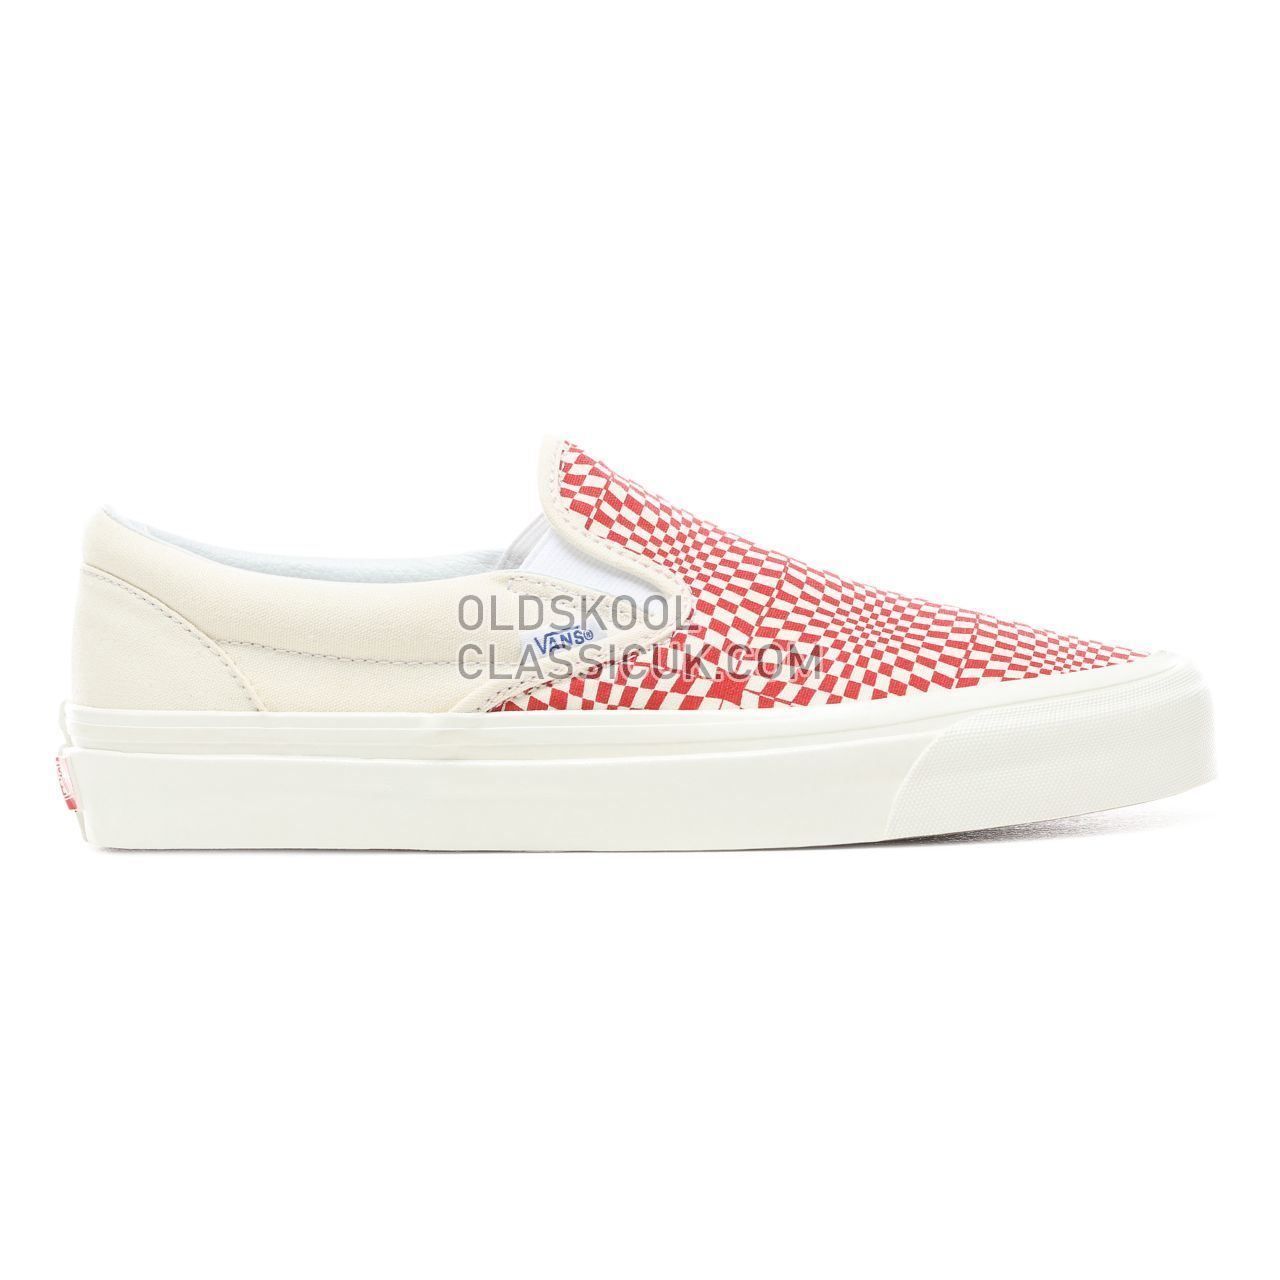 Vans Anaheim Factory Slip-On 98 DX Sneakers Mens (Anaheim Factory) Og Red/White/Warp Check VN0A3JEXVMZ Shoes